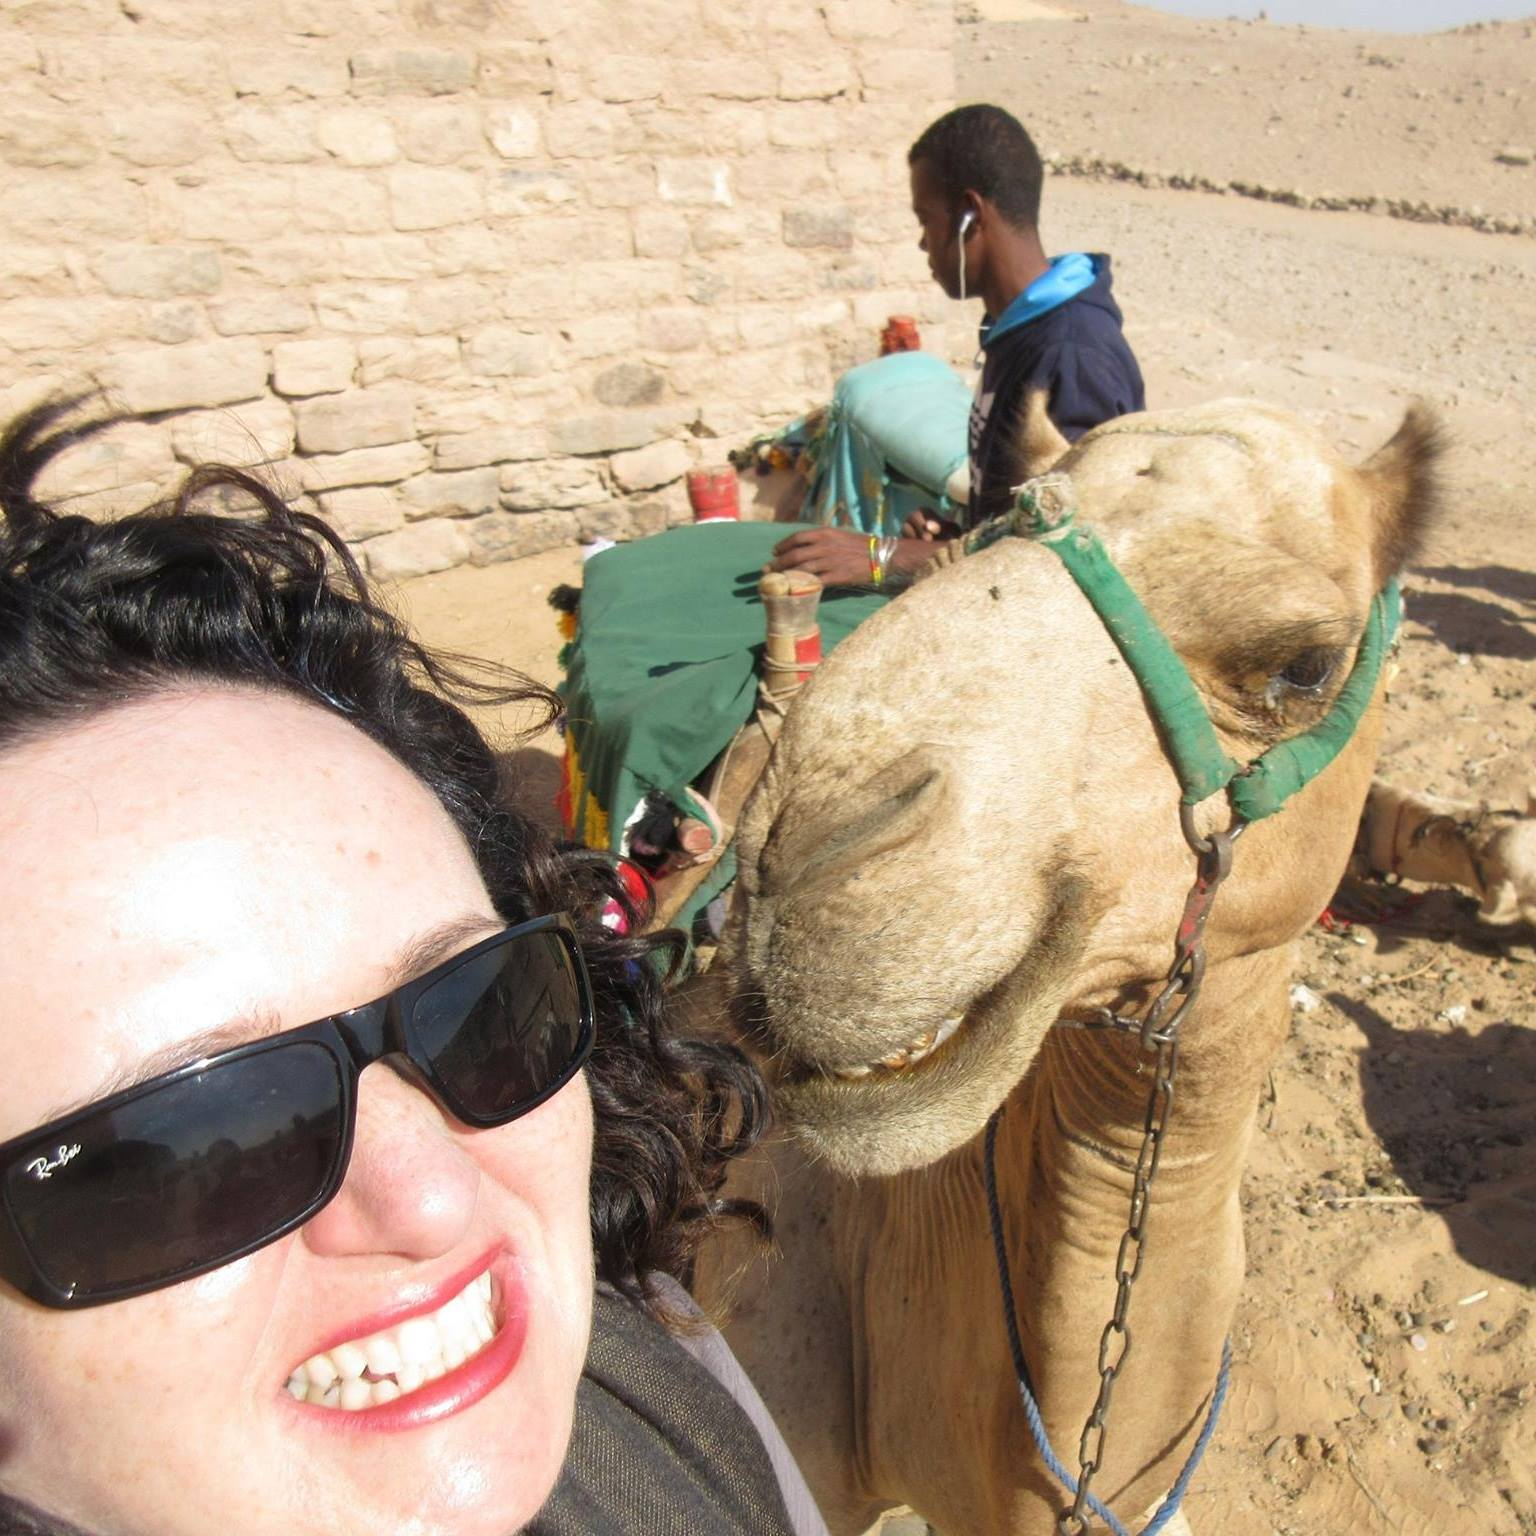 Laura in Egypt with a Camel and locals